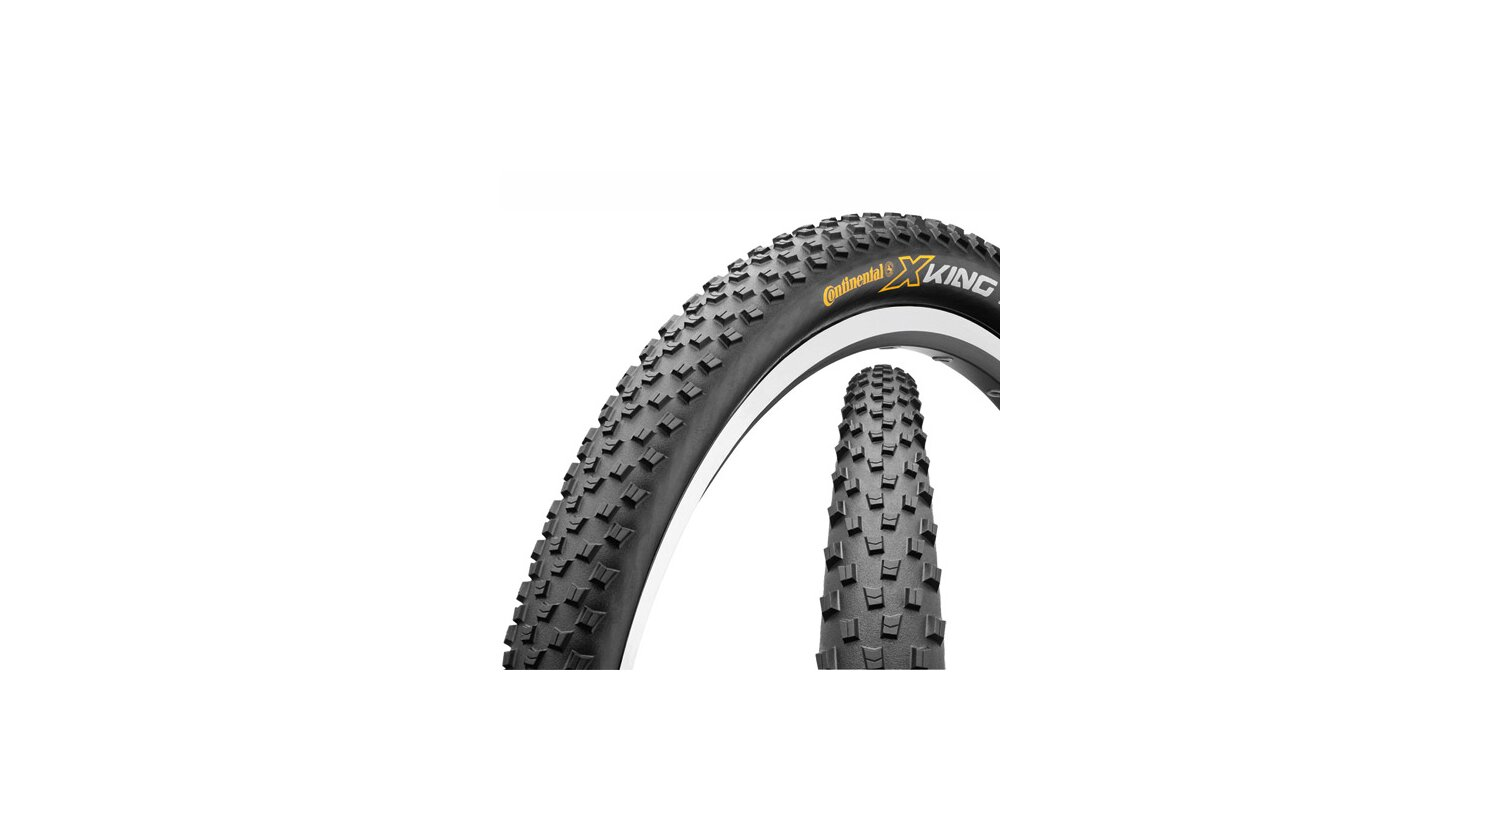 Continental X-King 29 Faltreifen 55-622 ProTection